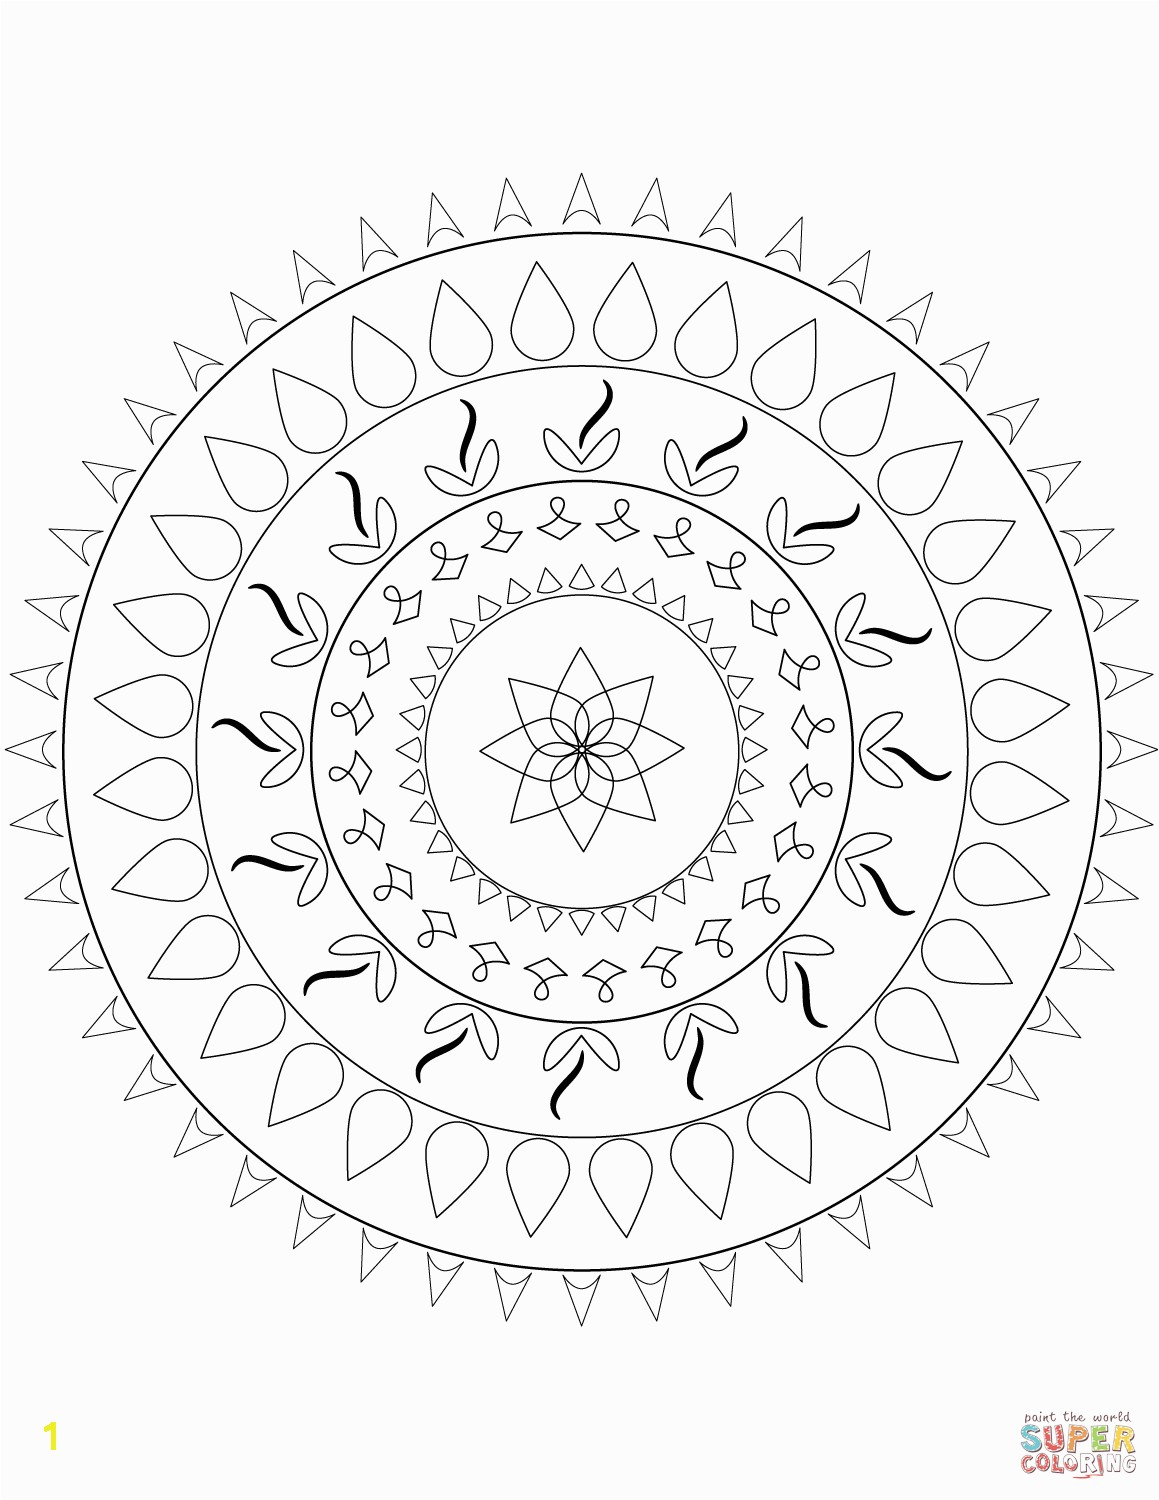 the Simple Mandala coloring pages to view printable